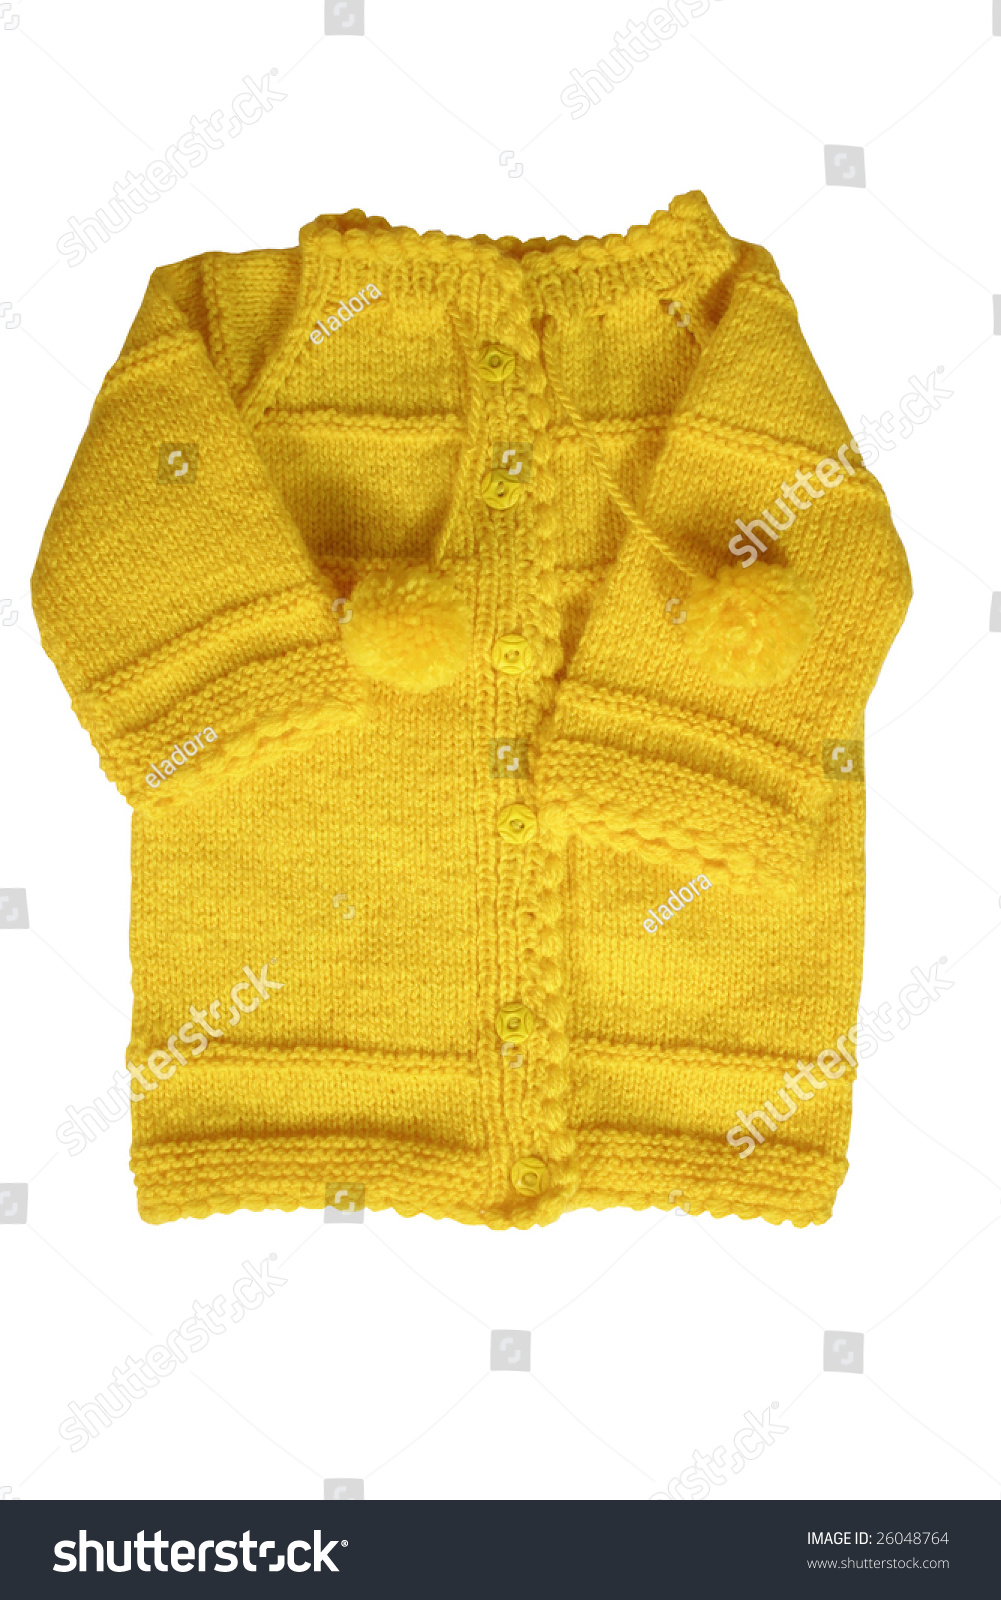 5cd827a22 Yellow Color Handmade Baby Cardigan Stock Photo (Edit Now) 26048764 ...